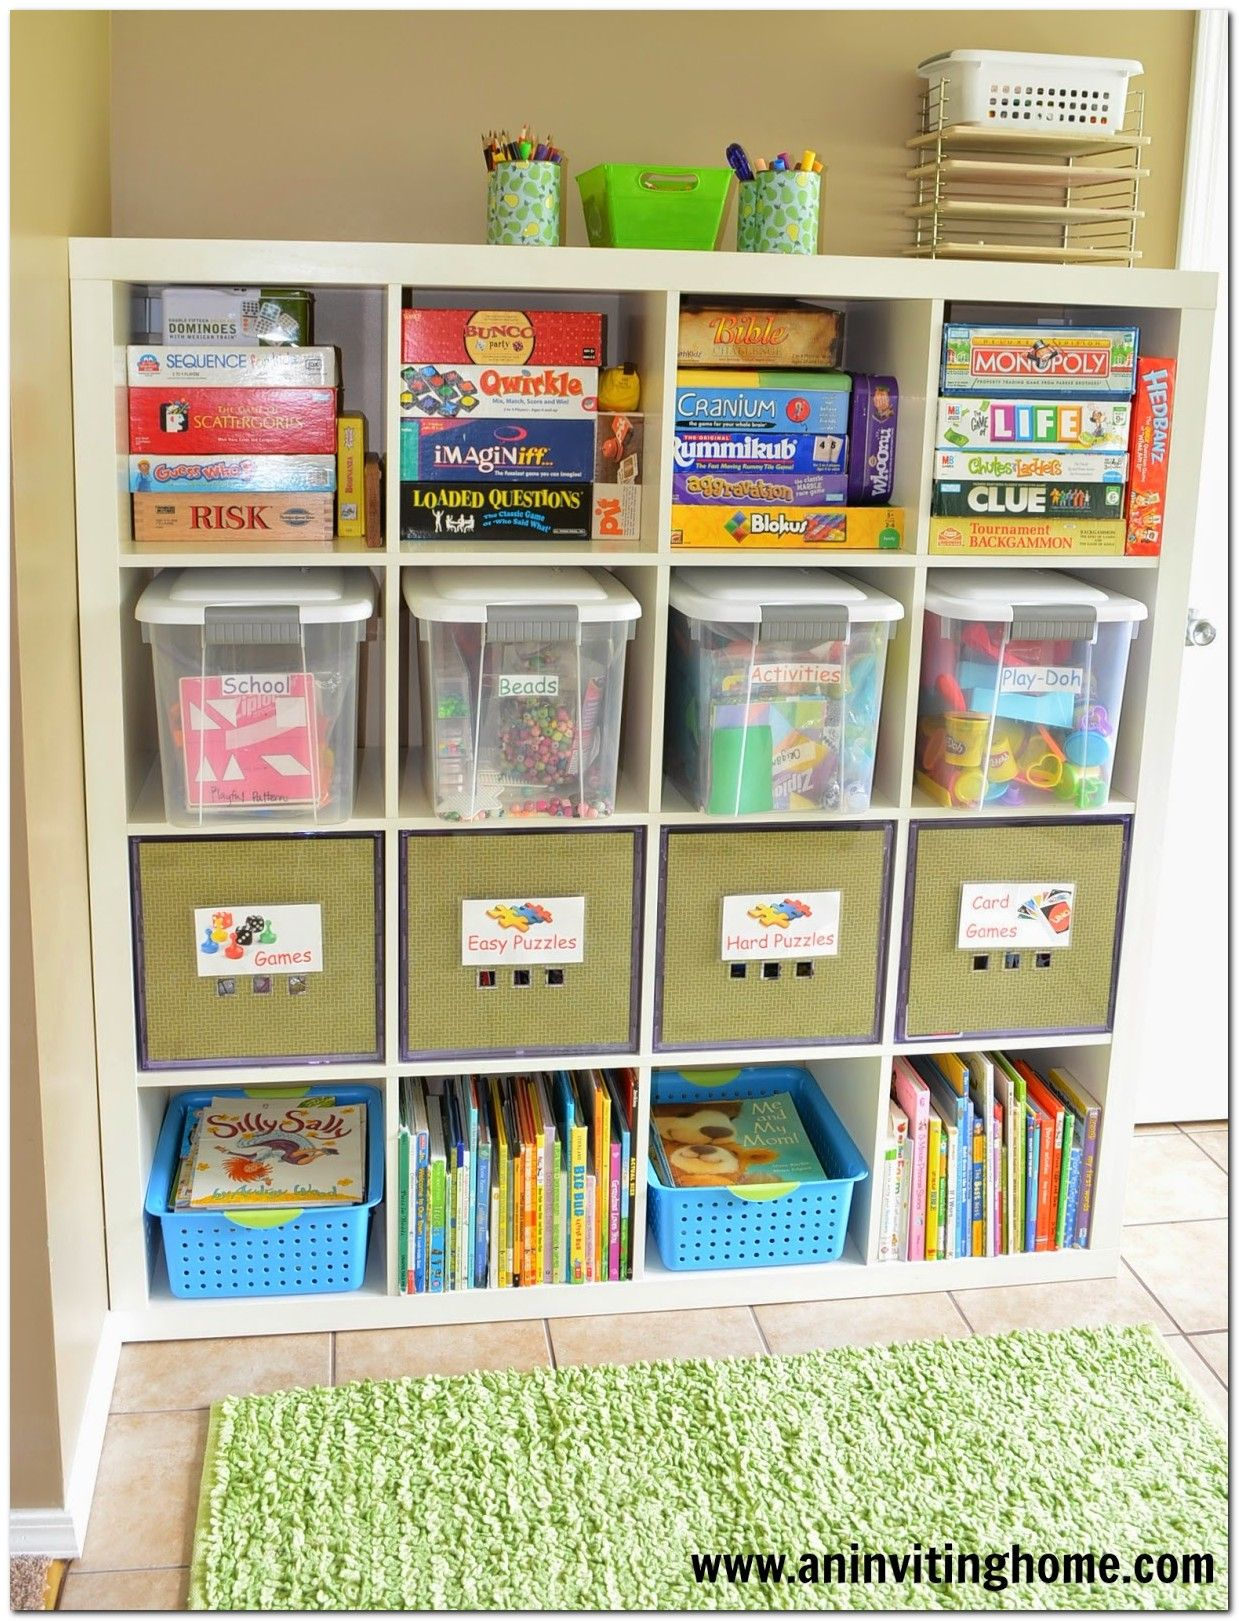 Toy Storage Ideas for Small Apartment | Toy storage, Small flats and ...